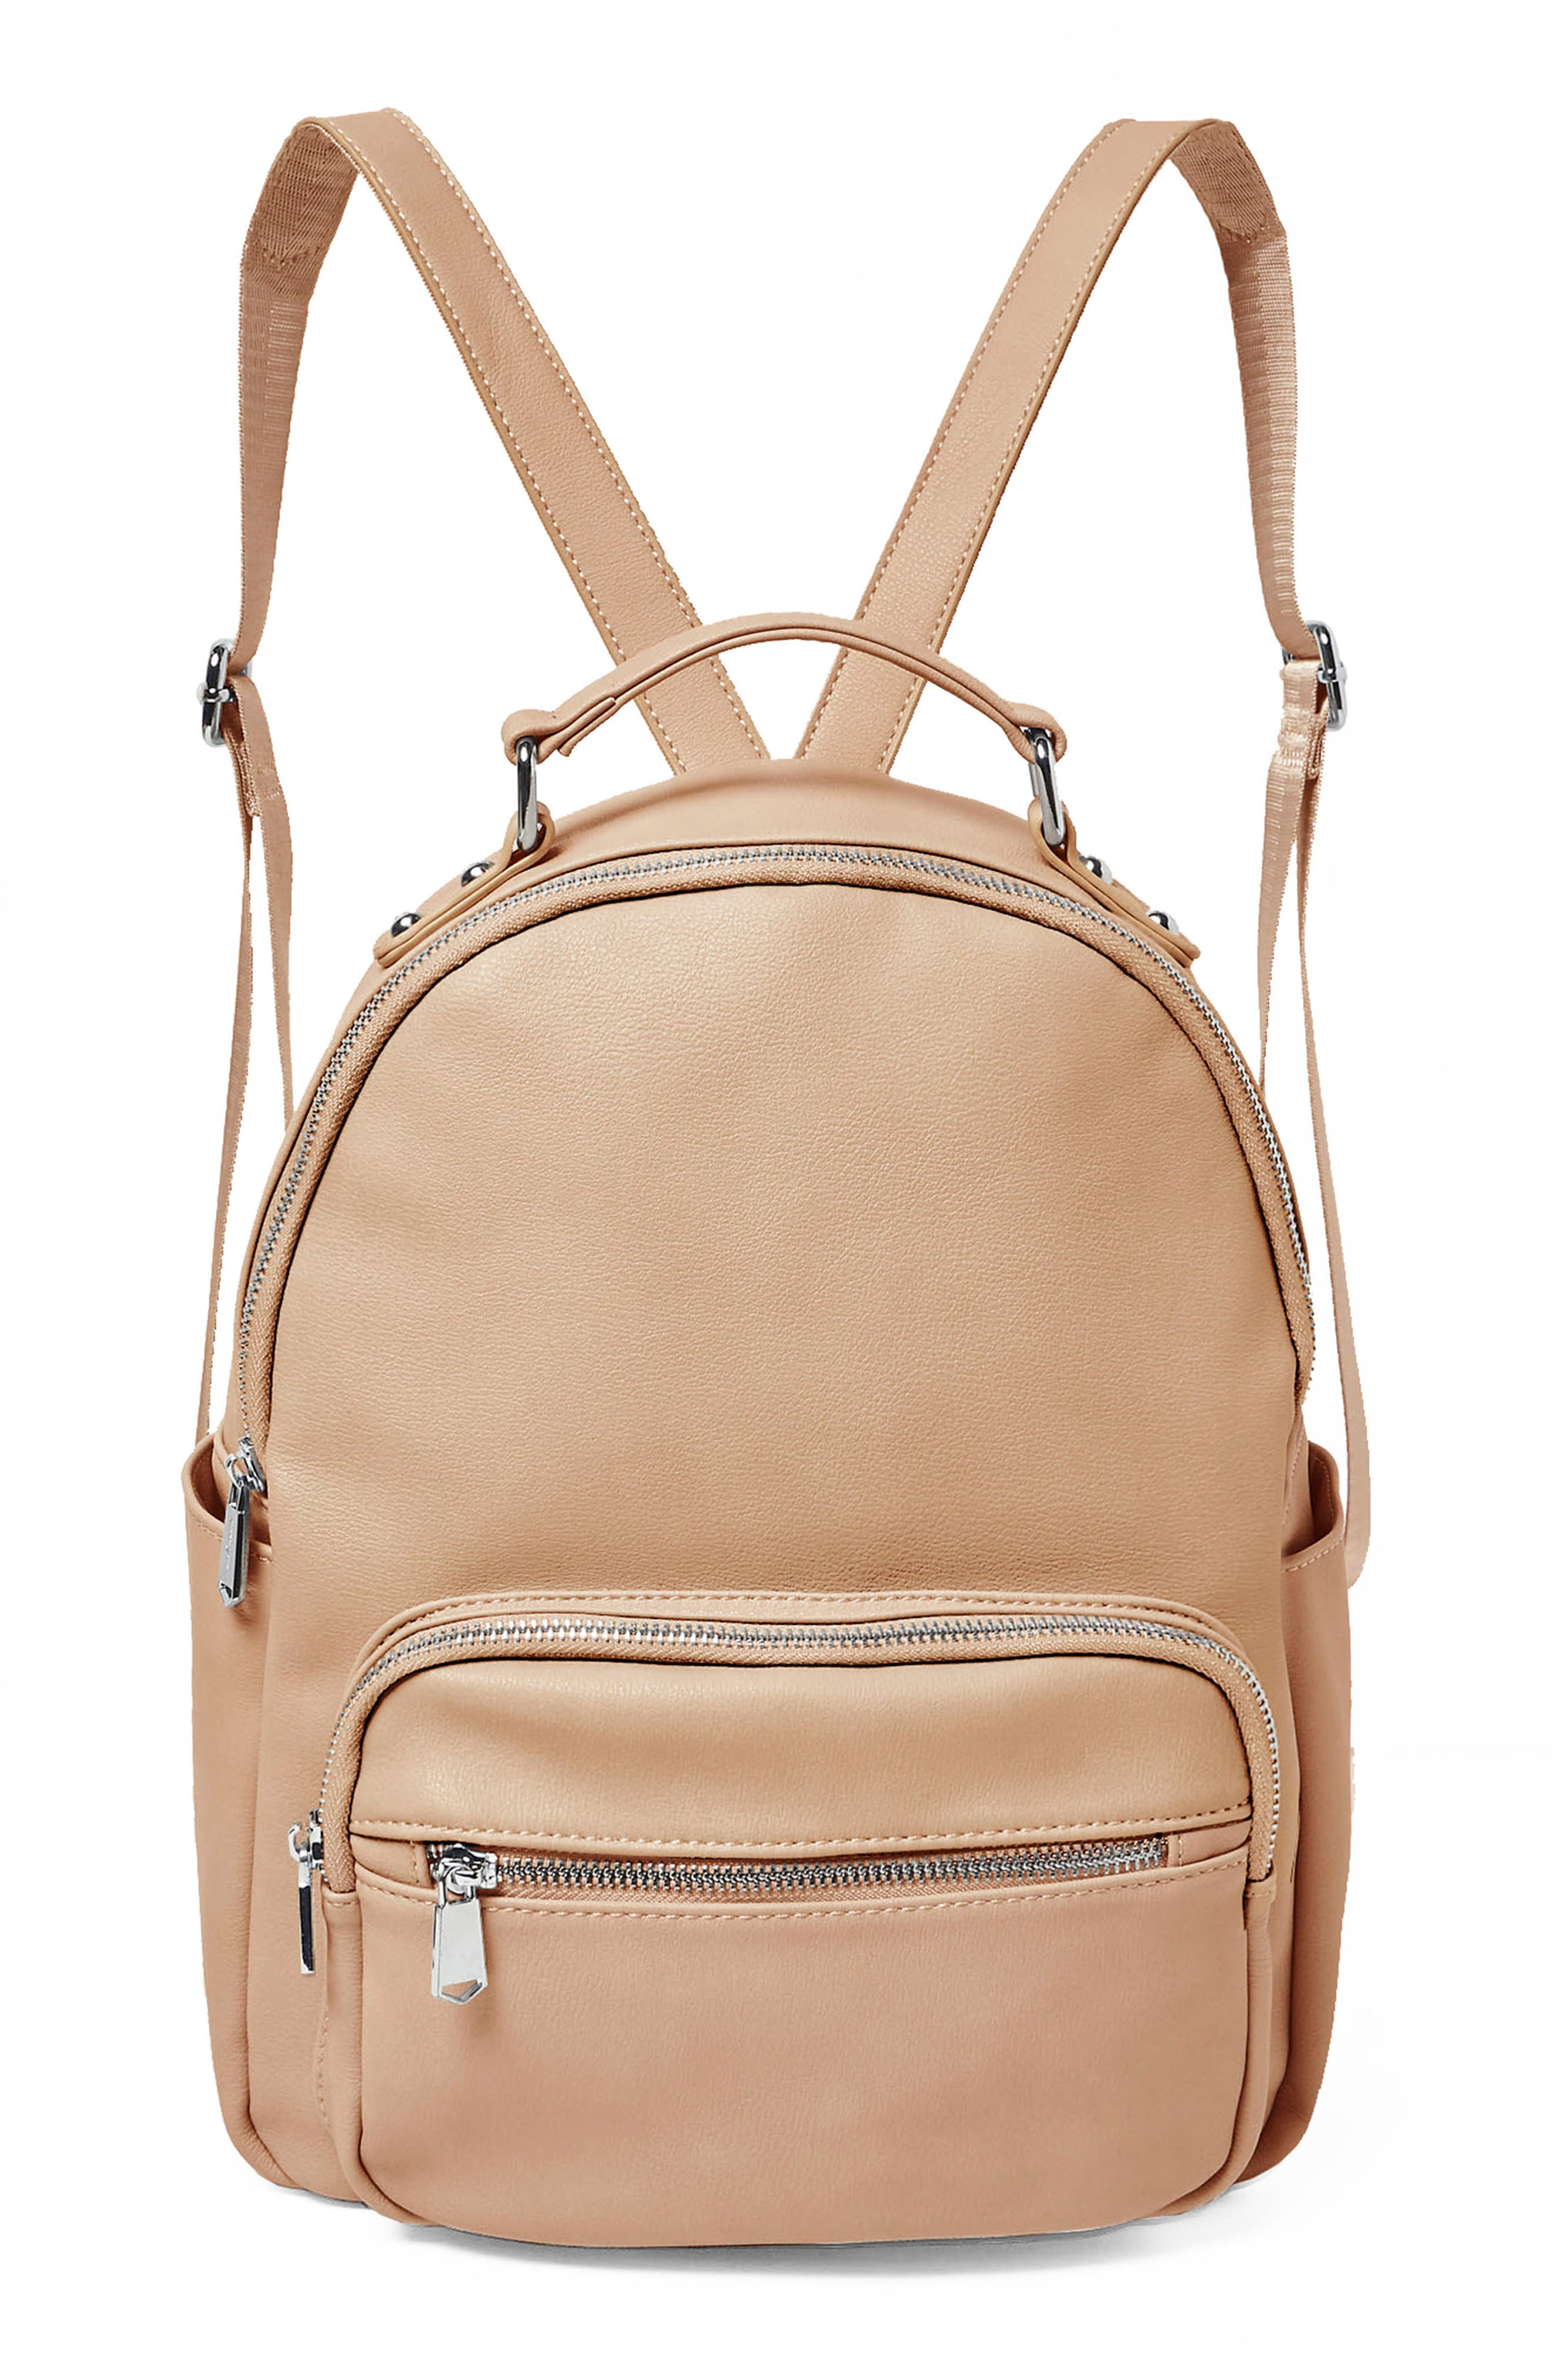 On My Own Vegan Leather Backpack,                         Main,                         color, NUDE